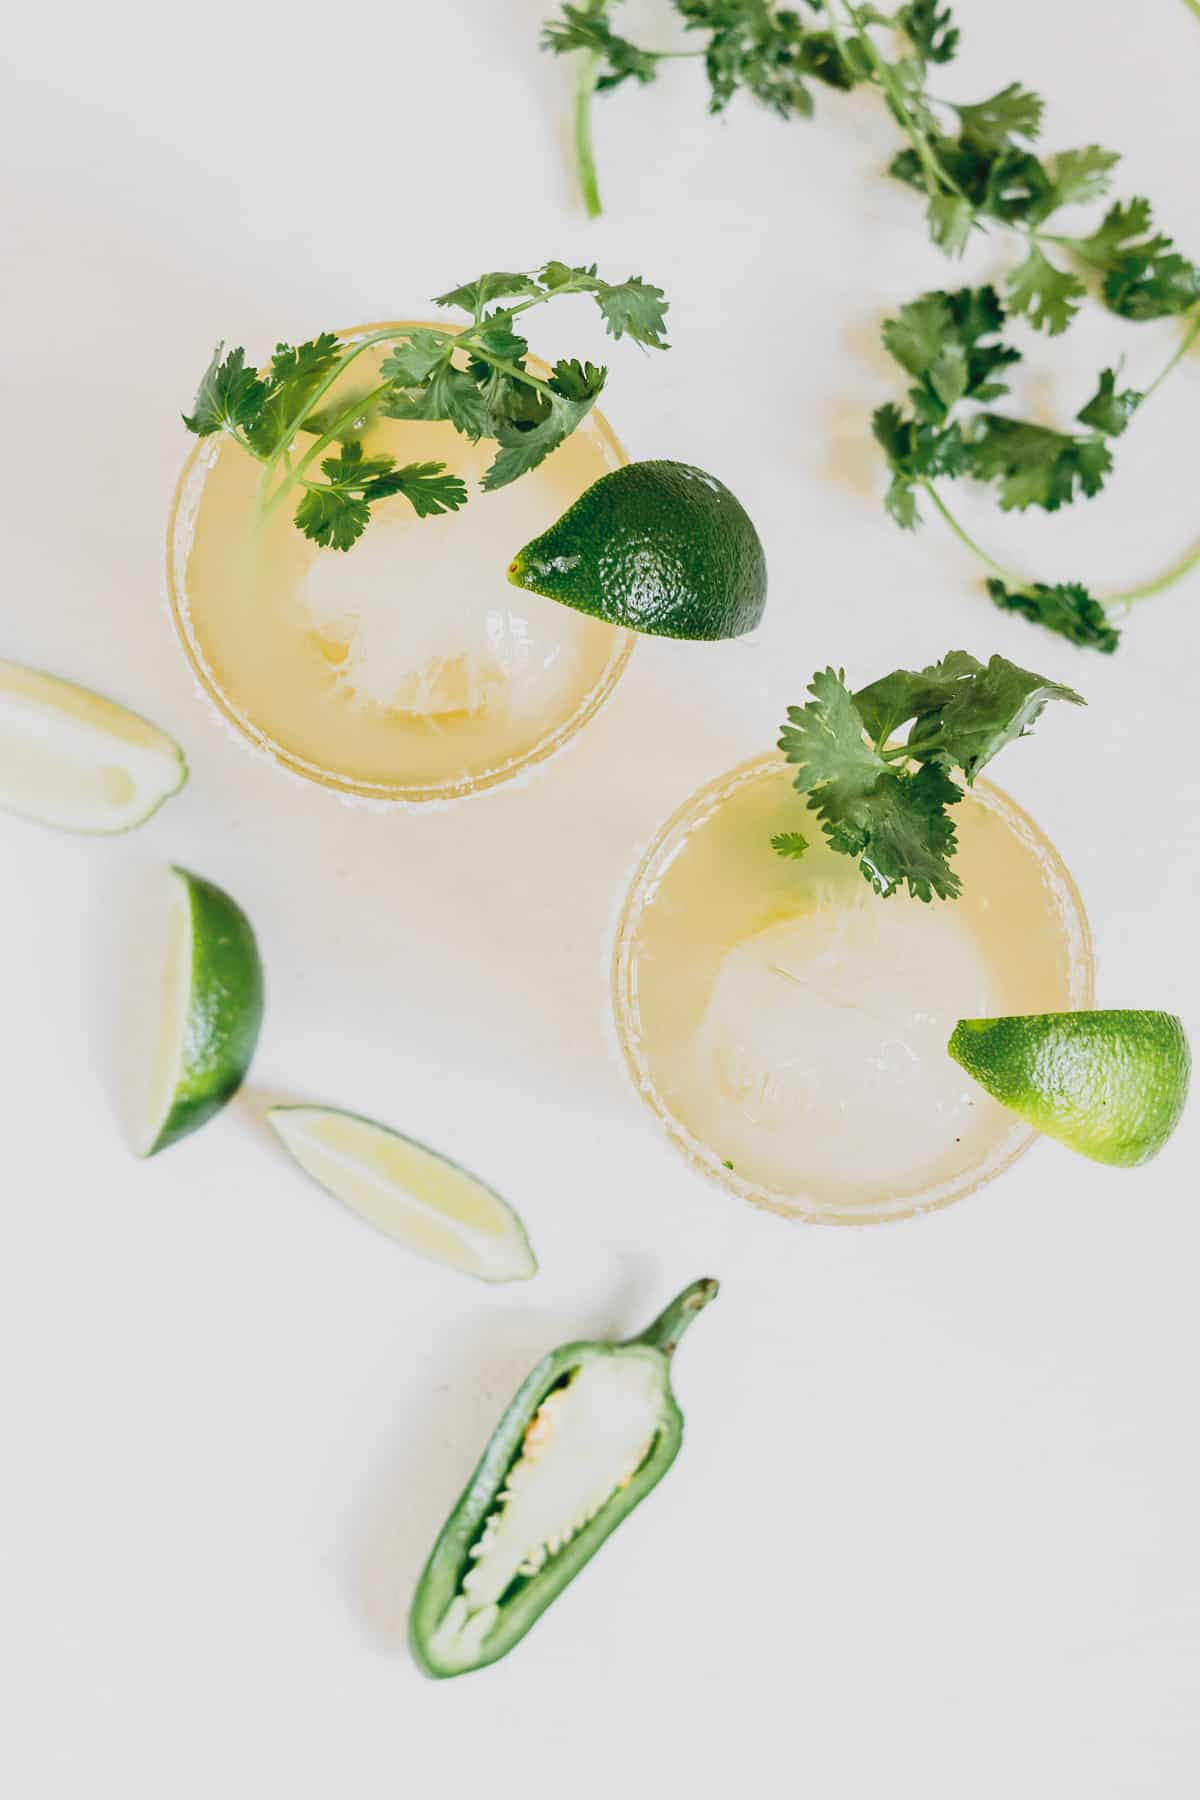 Overhead view of two margaritas in cocktail glasses with lime wedges and fresh cilantro.